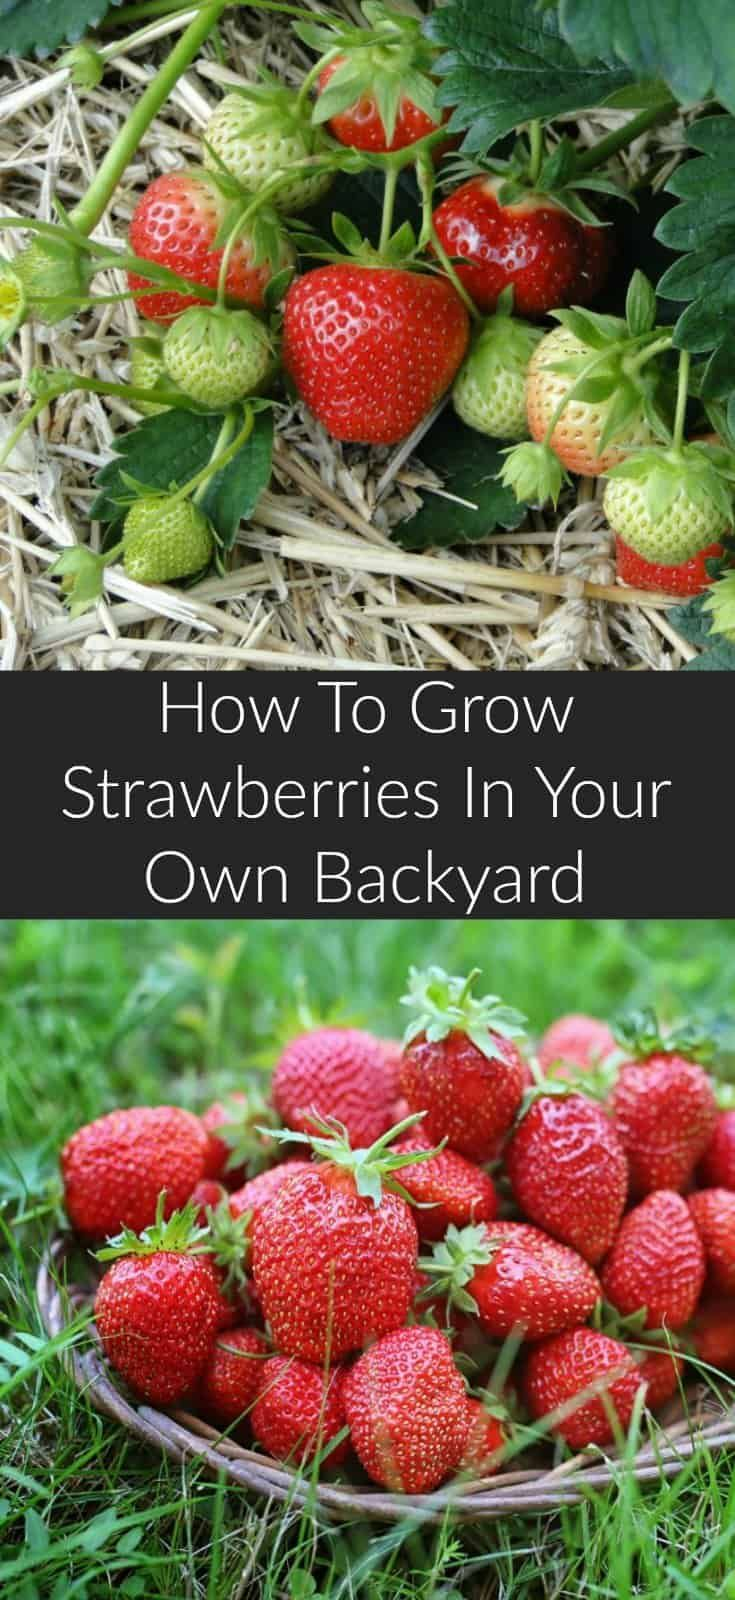 How To Grow Strawberries Growing Strawberries Strawberry Plants Fruit Garden